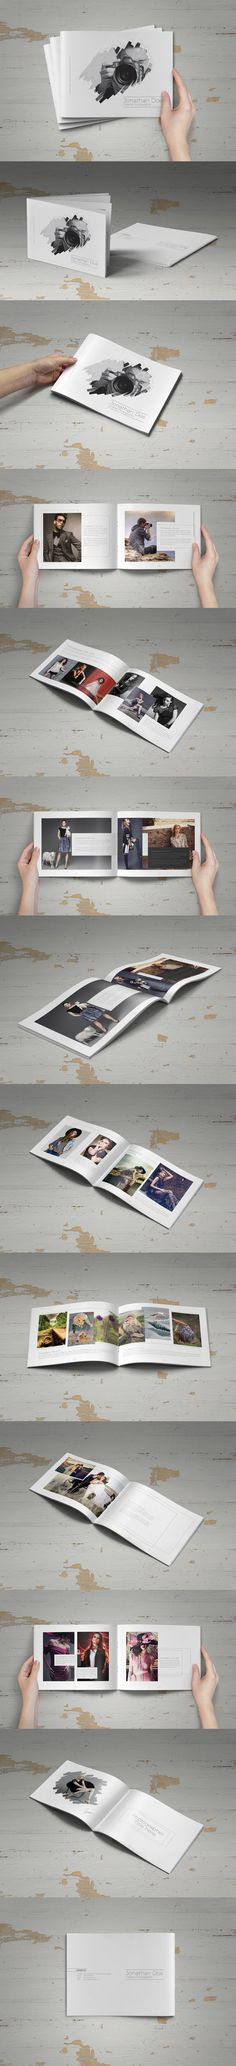 Minimal Photographer Portfolio Brochure 18 Pages Template InDesign INDD